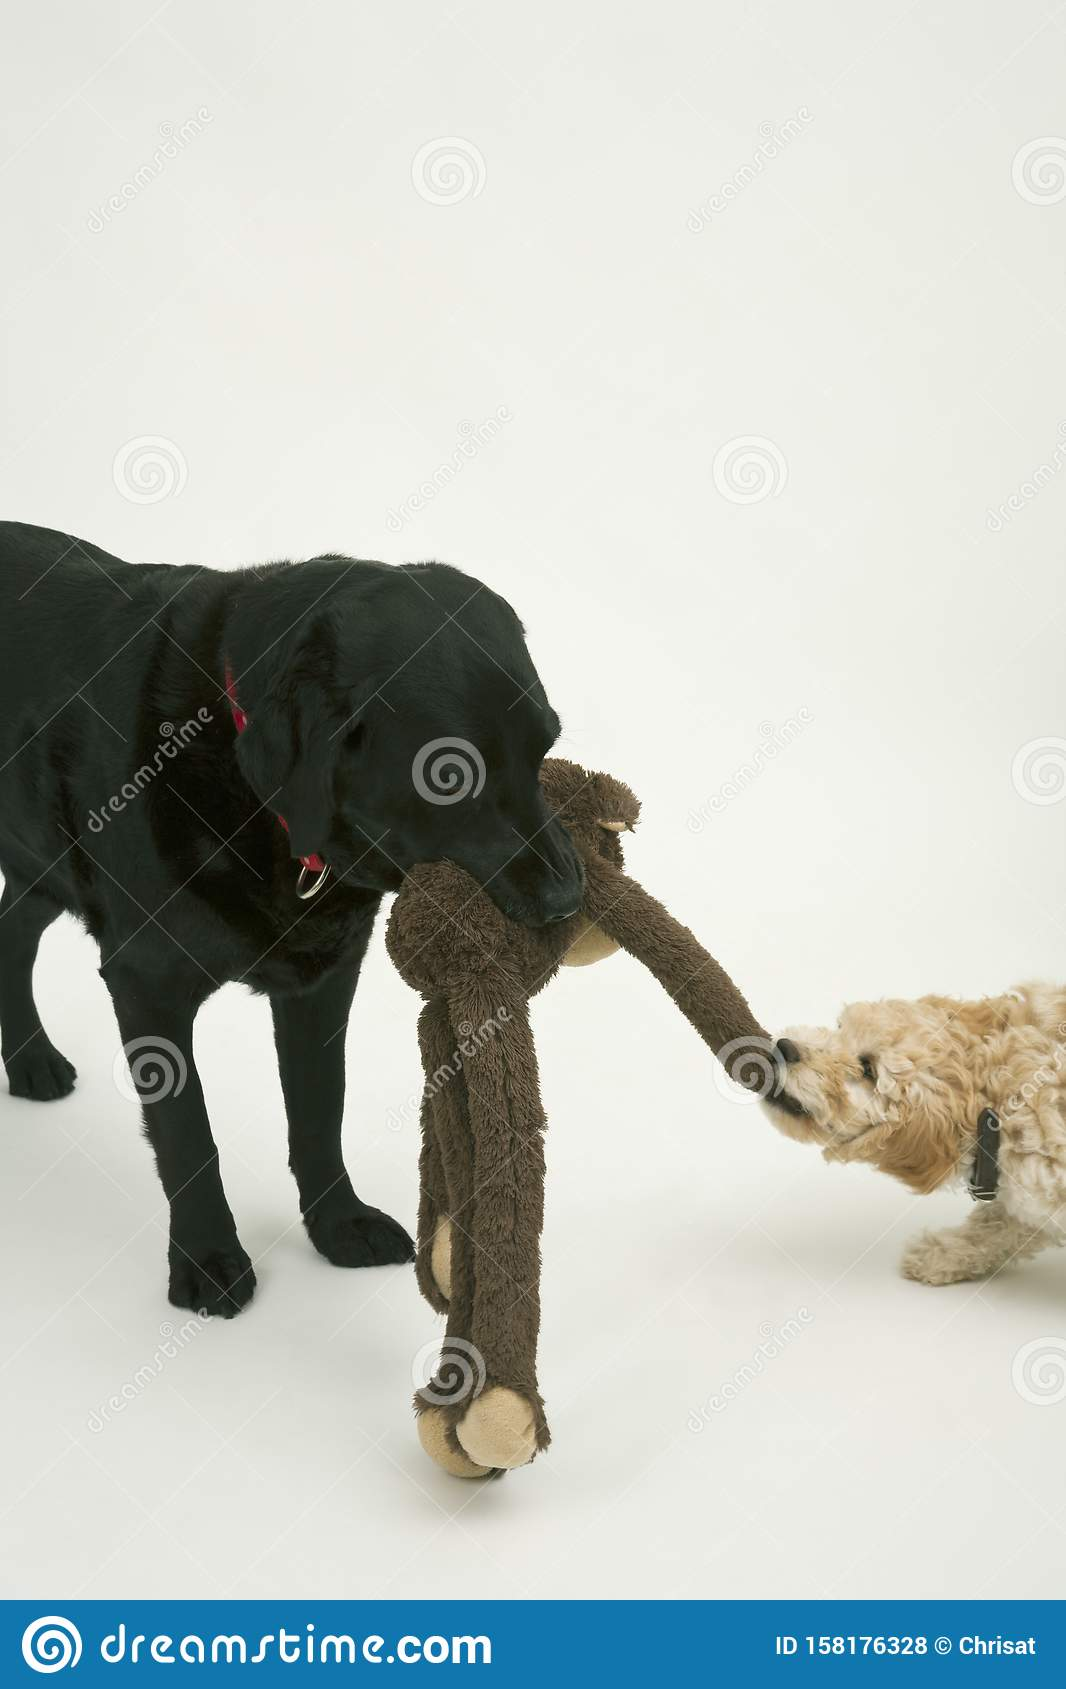 An elderly black labradorwaits patiently while A cute Cockapoo puppy tries to take her soft toy away.